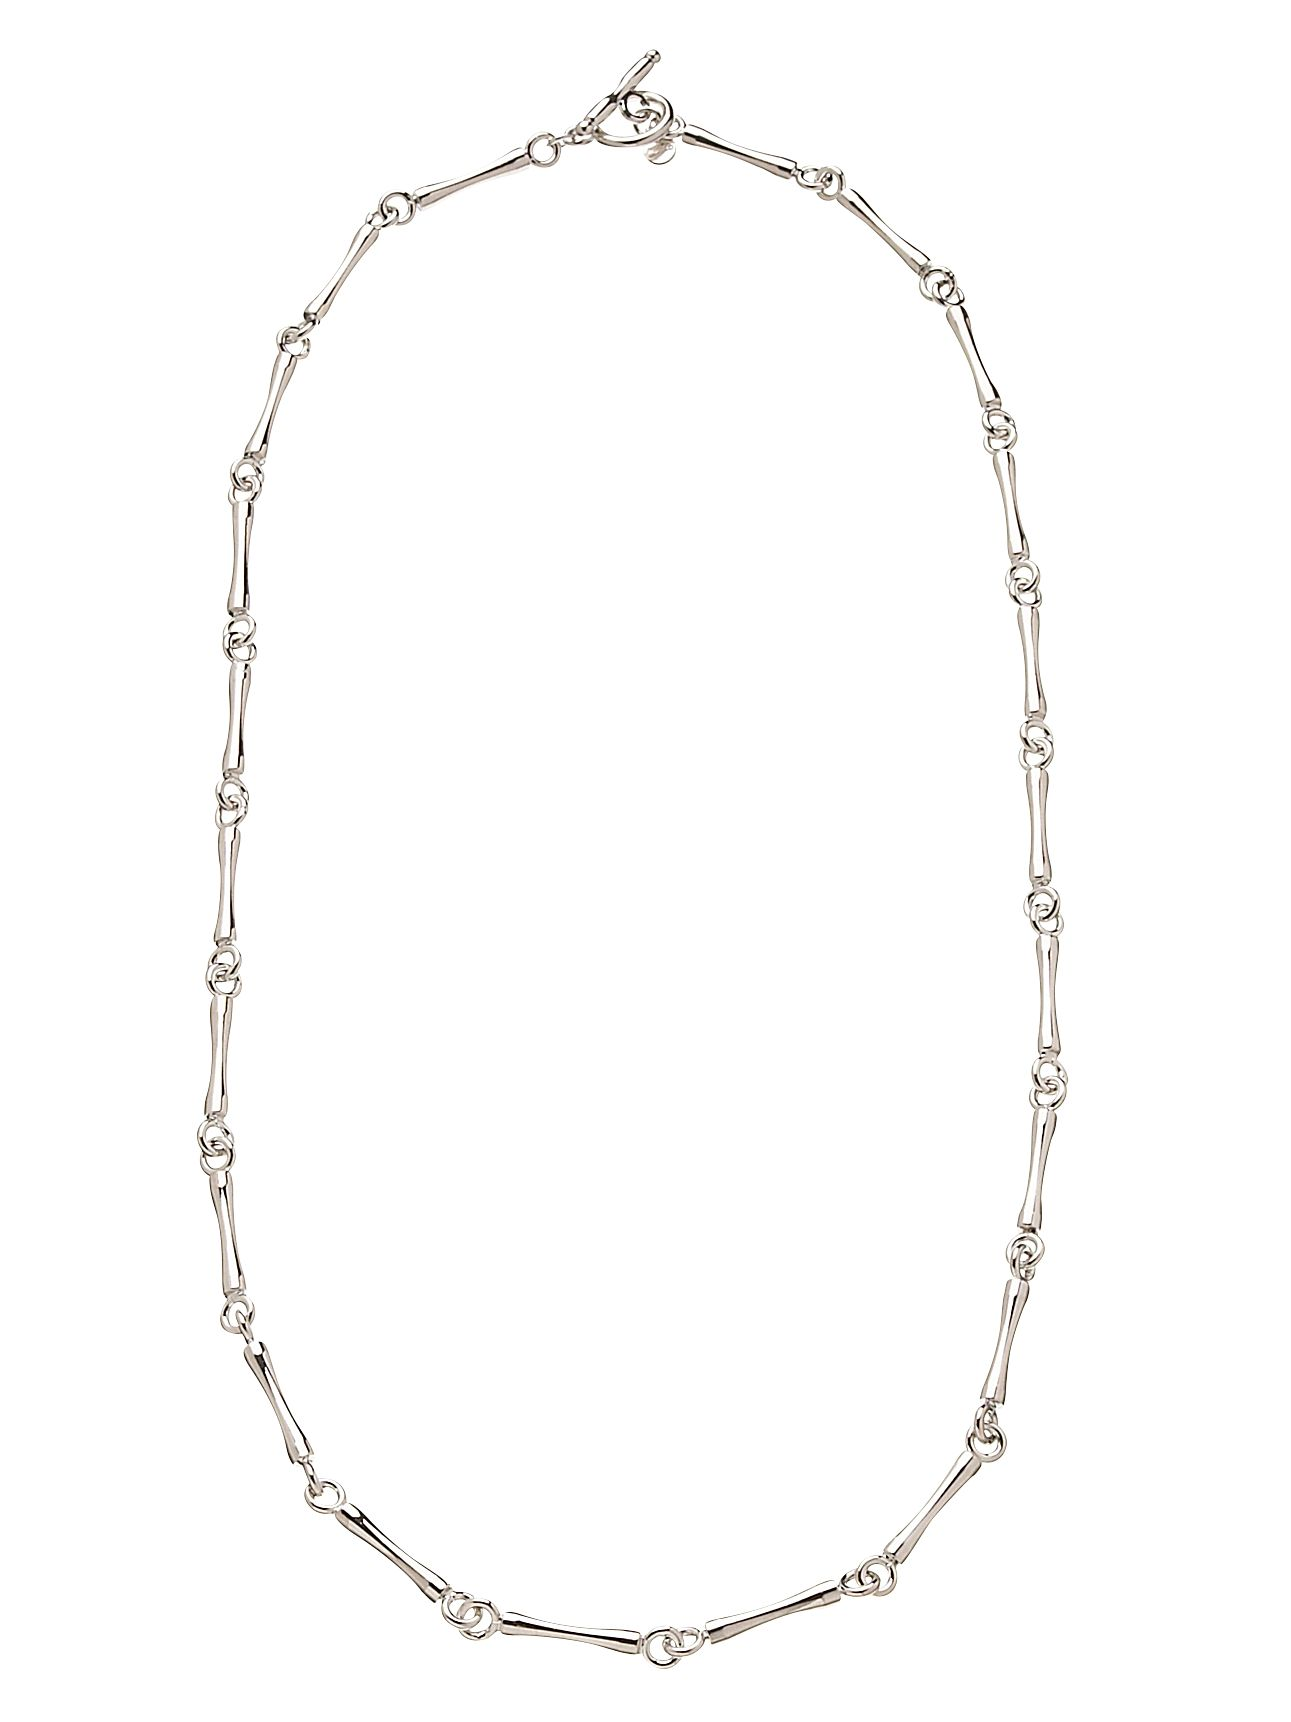 Bone chain necklace